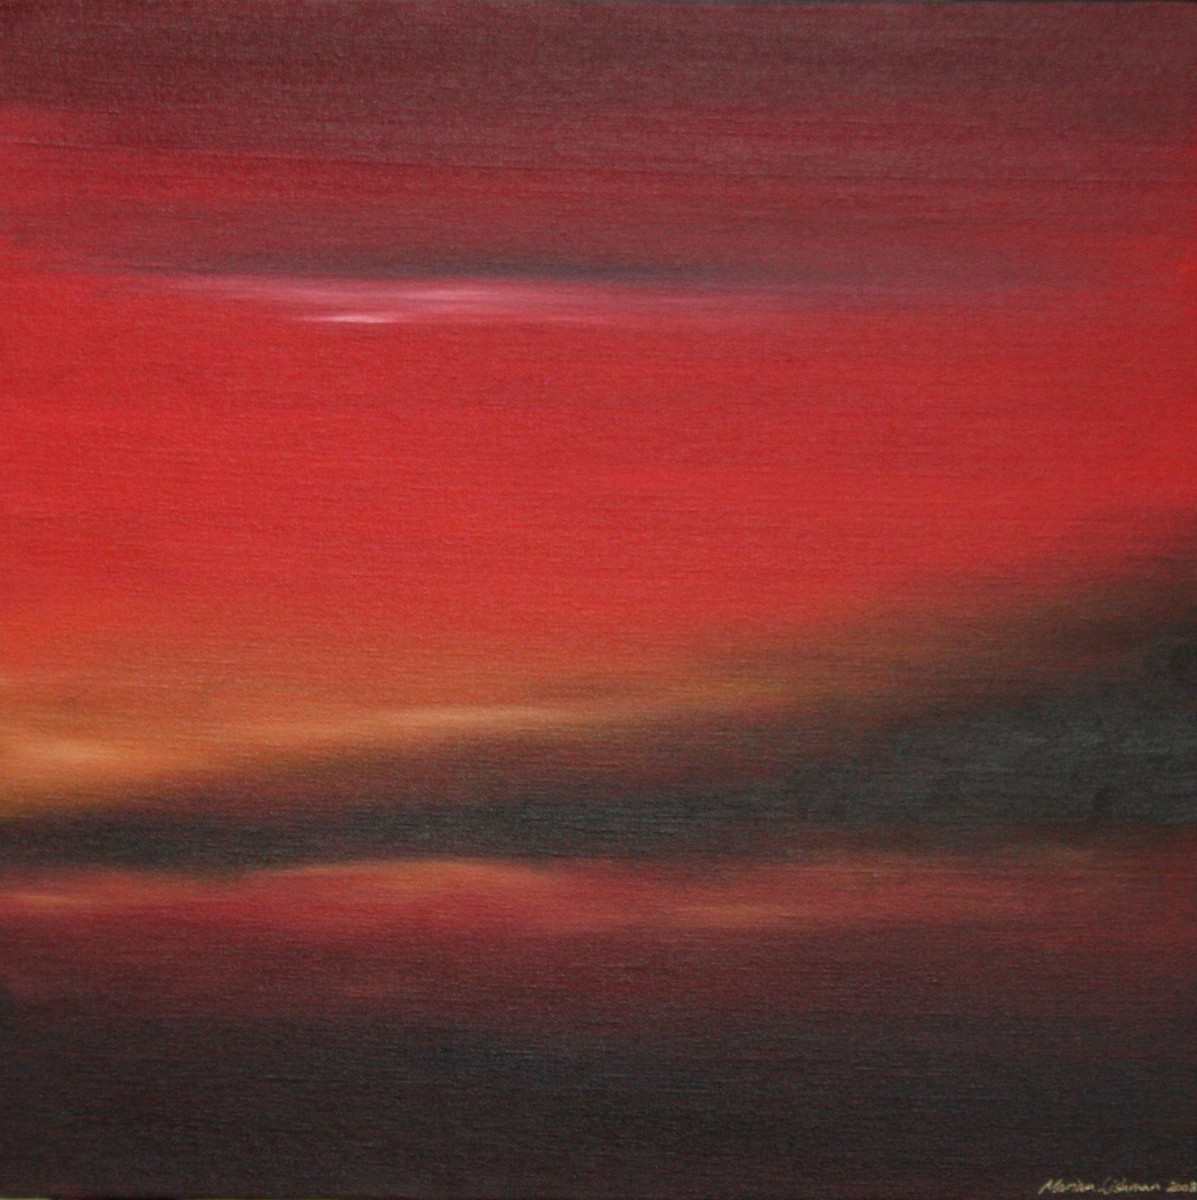 I used Liquin on this painting which made blending easier and it dried much more quickly. painting (c) Azure11, 2008